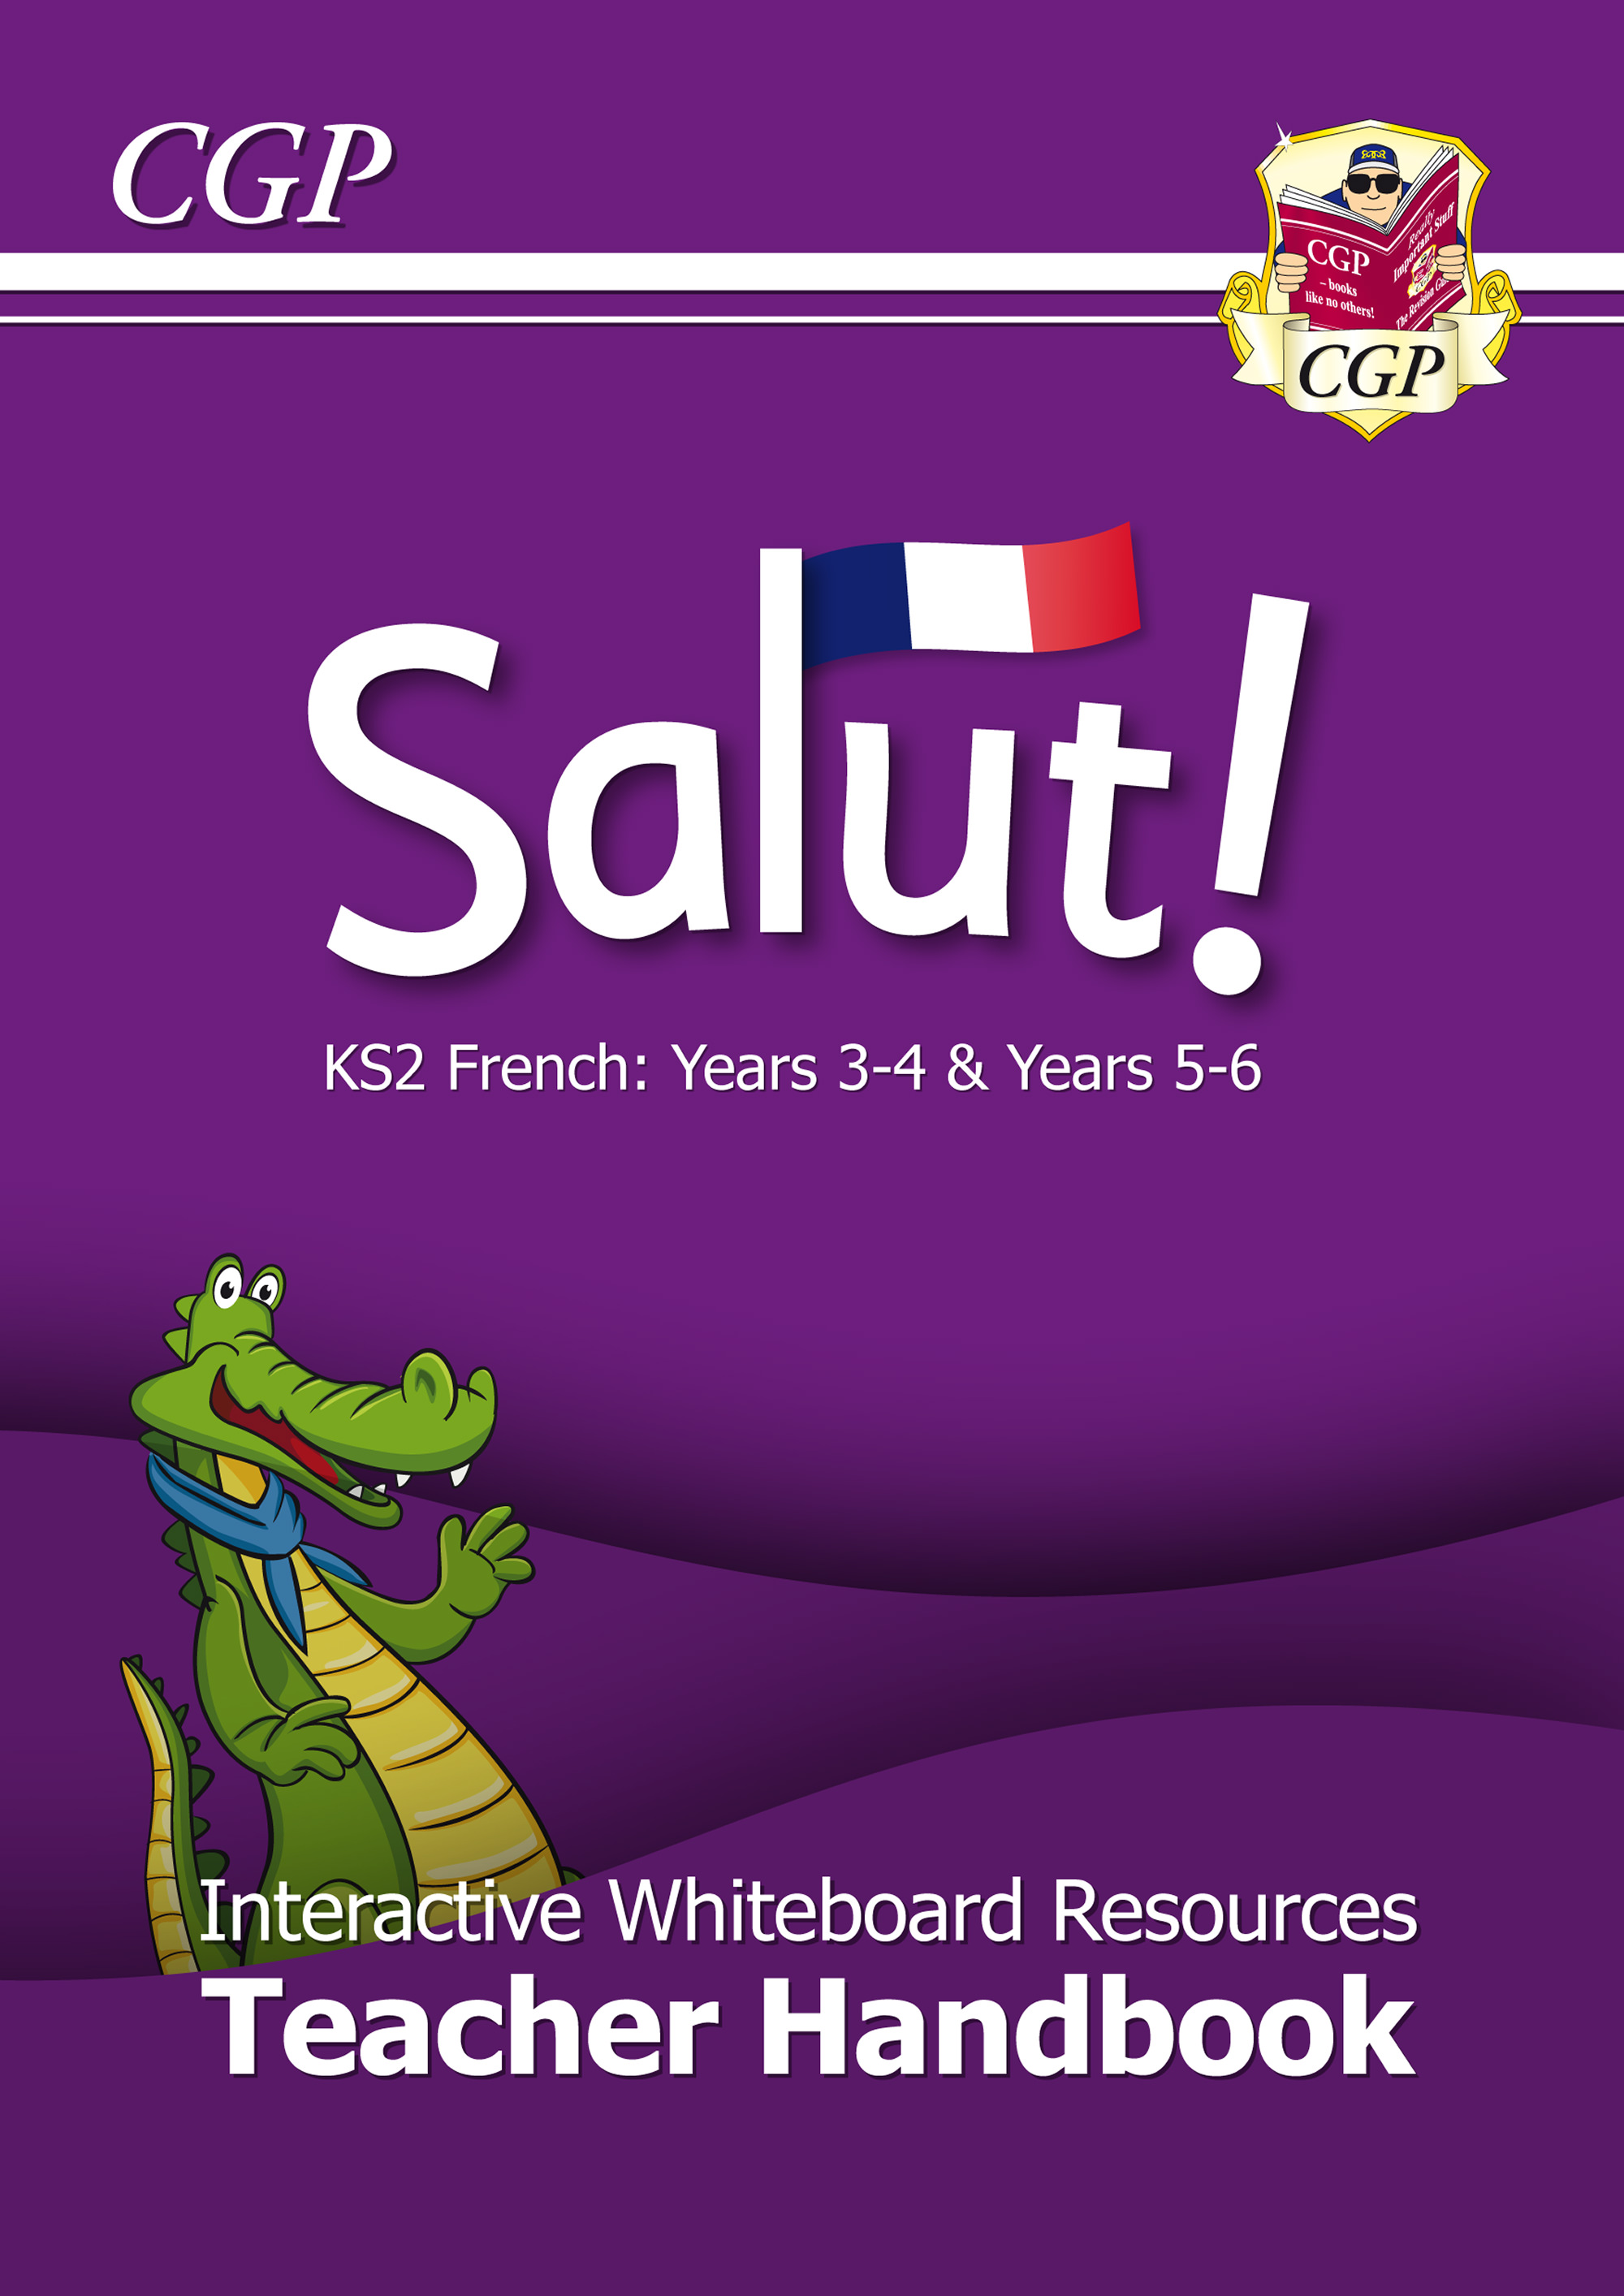 21FST - Salut! KS2 French Interactive Whiteboard Resources - Teacher Handbook